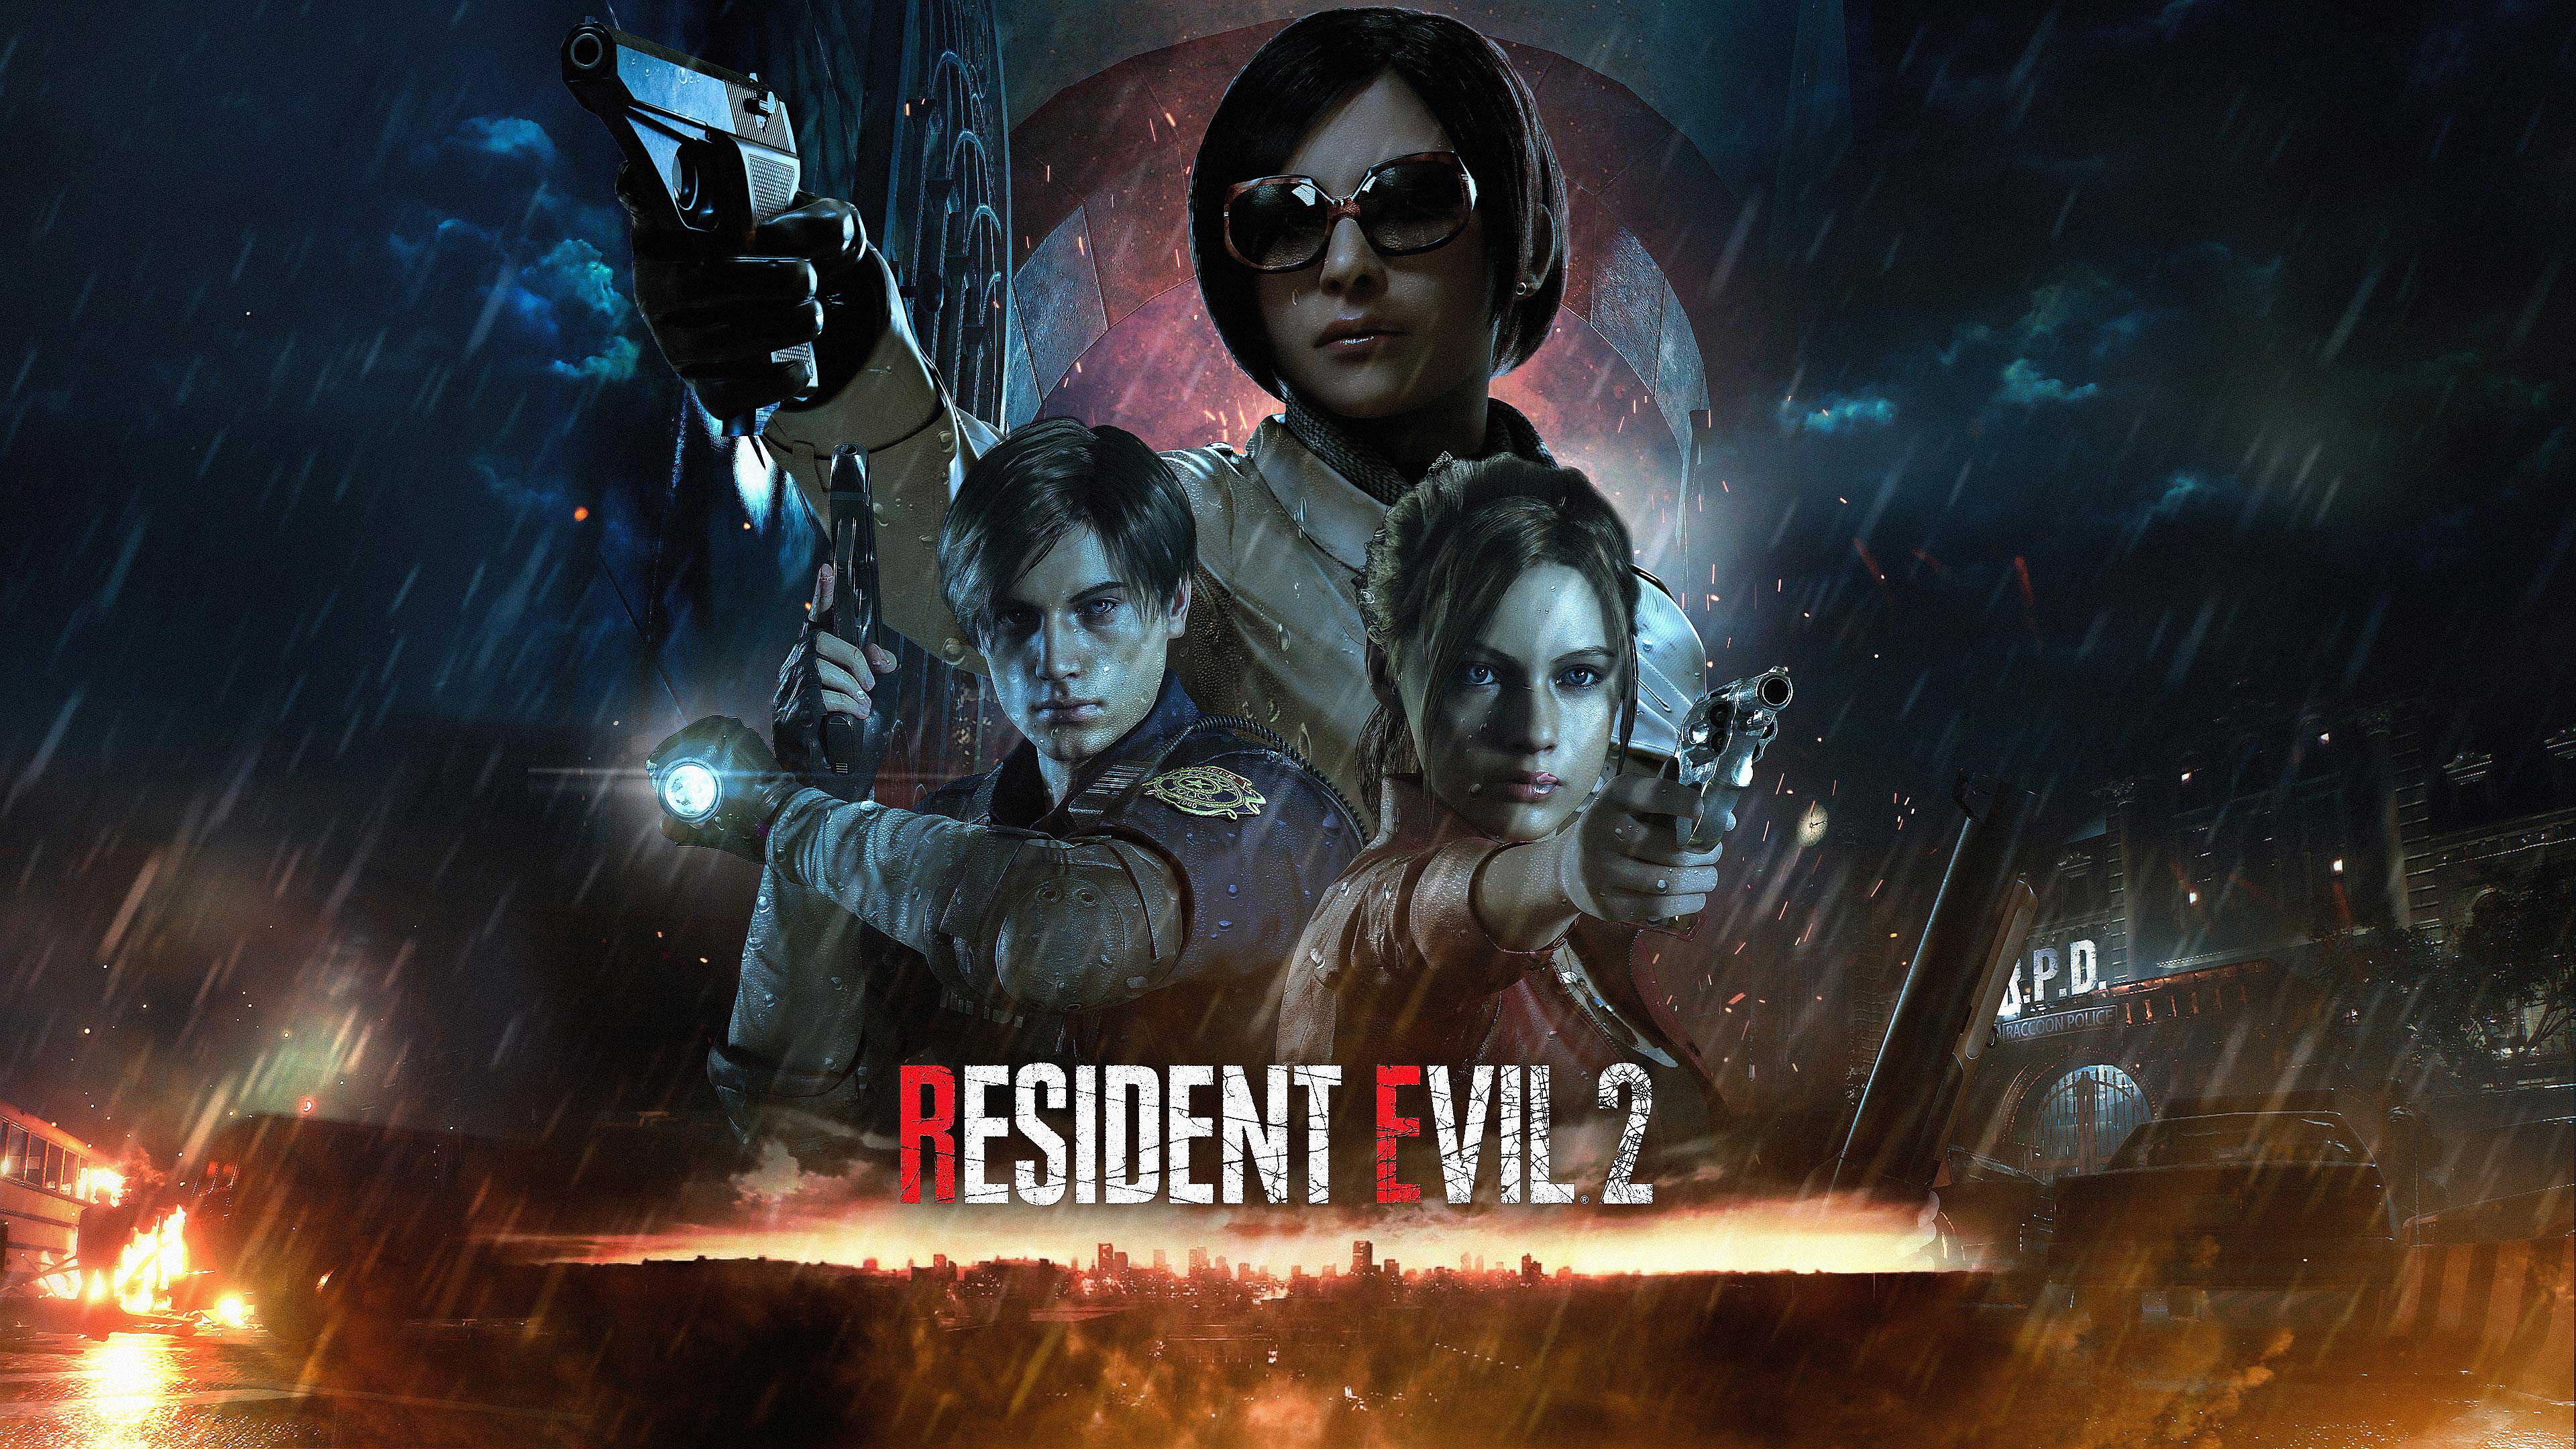 Resident Evil 2 Remake Wallpapers In Ultra HD